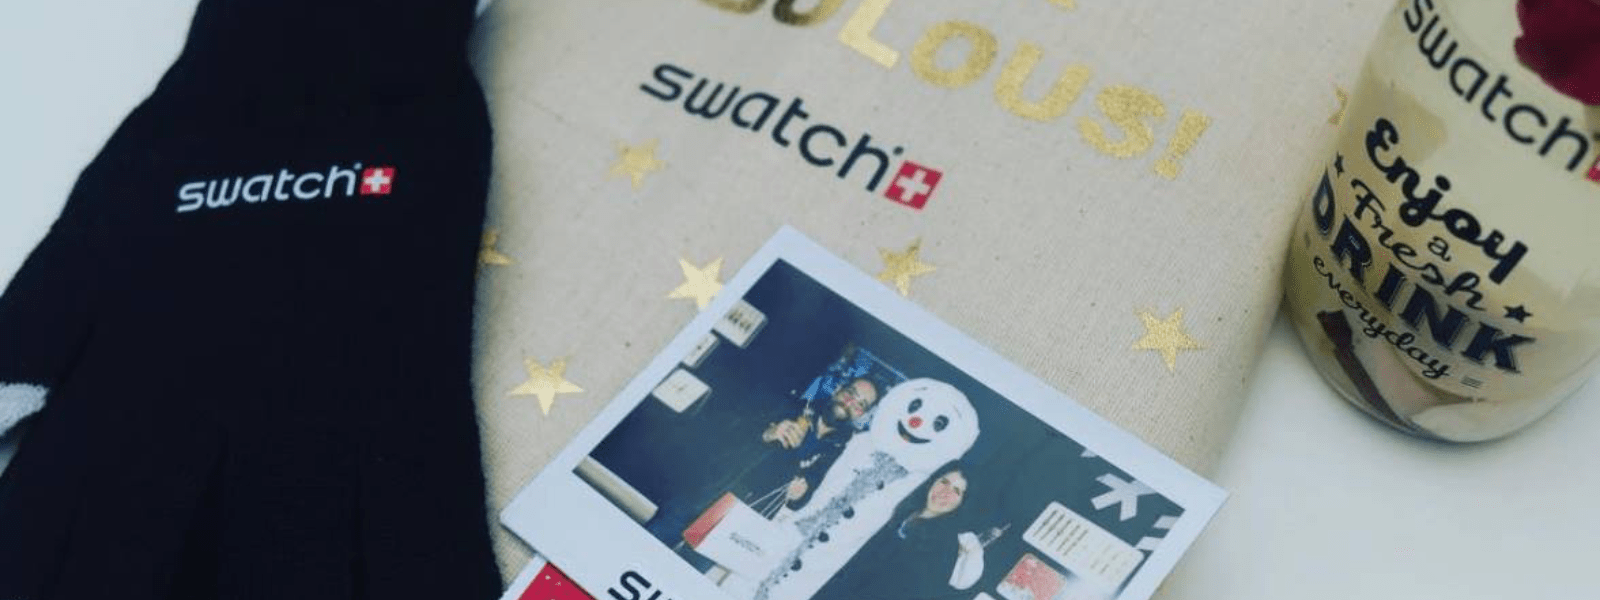 swatch-shopping-party-4